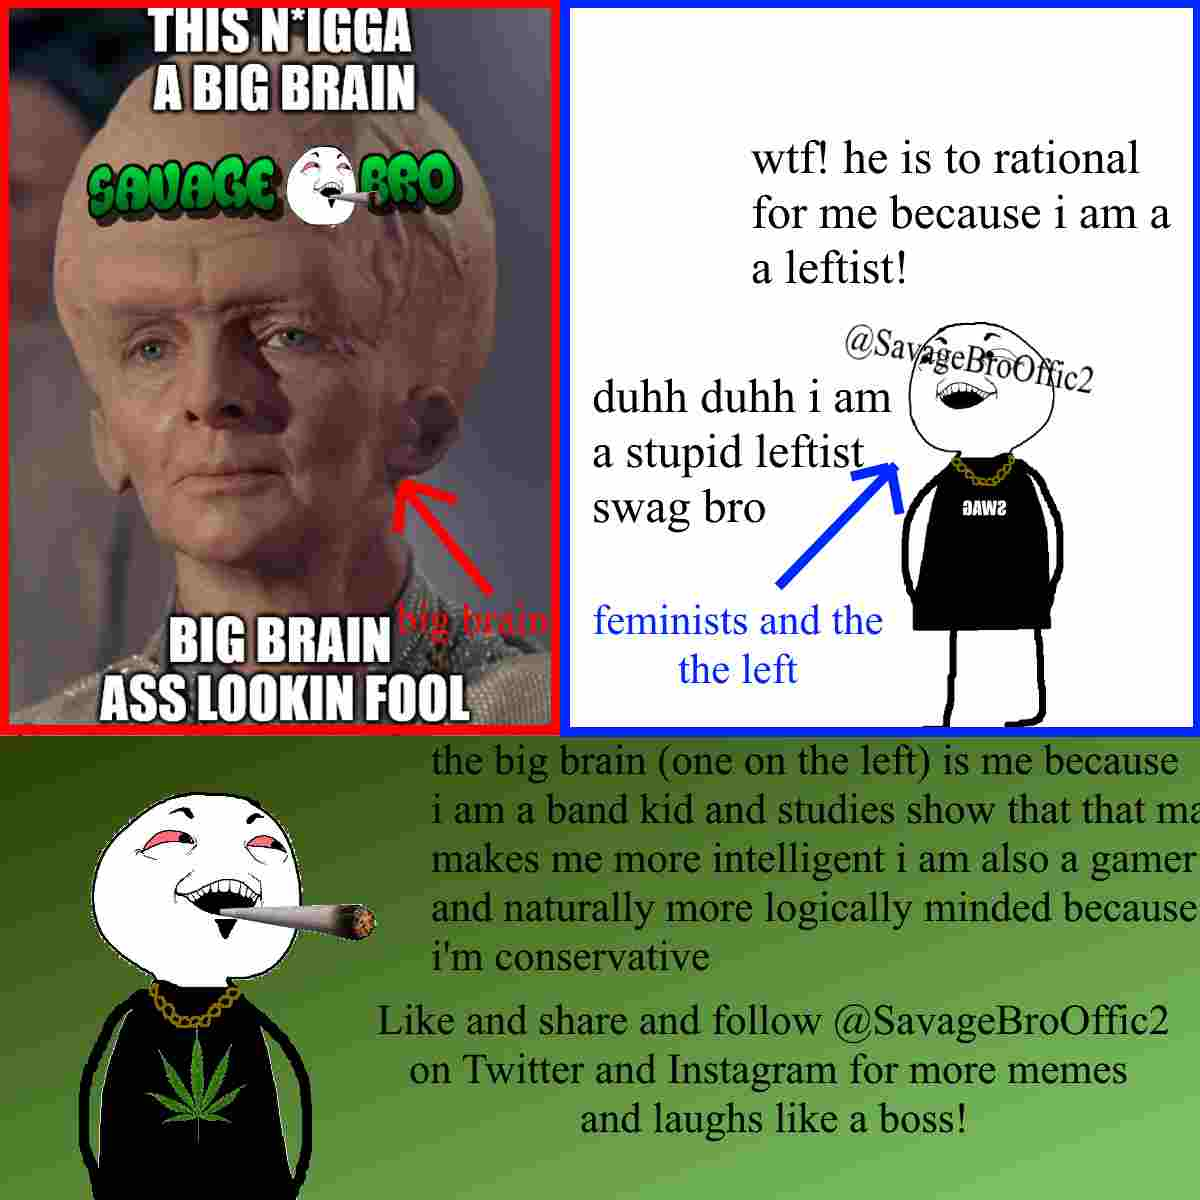 Likeaboss High Highmemes Weed Weedmemes Bruh Marchingband Band Bandkids Bandmemes Conservative Gaming Gamingmemespic Twitter Com Houobjfeq